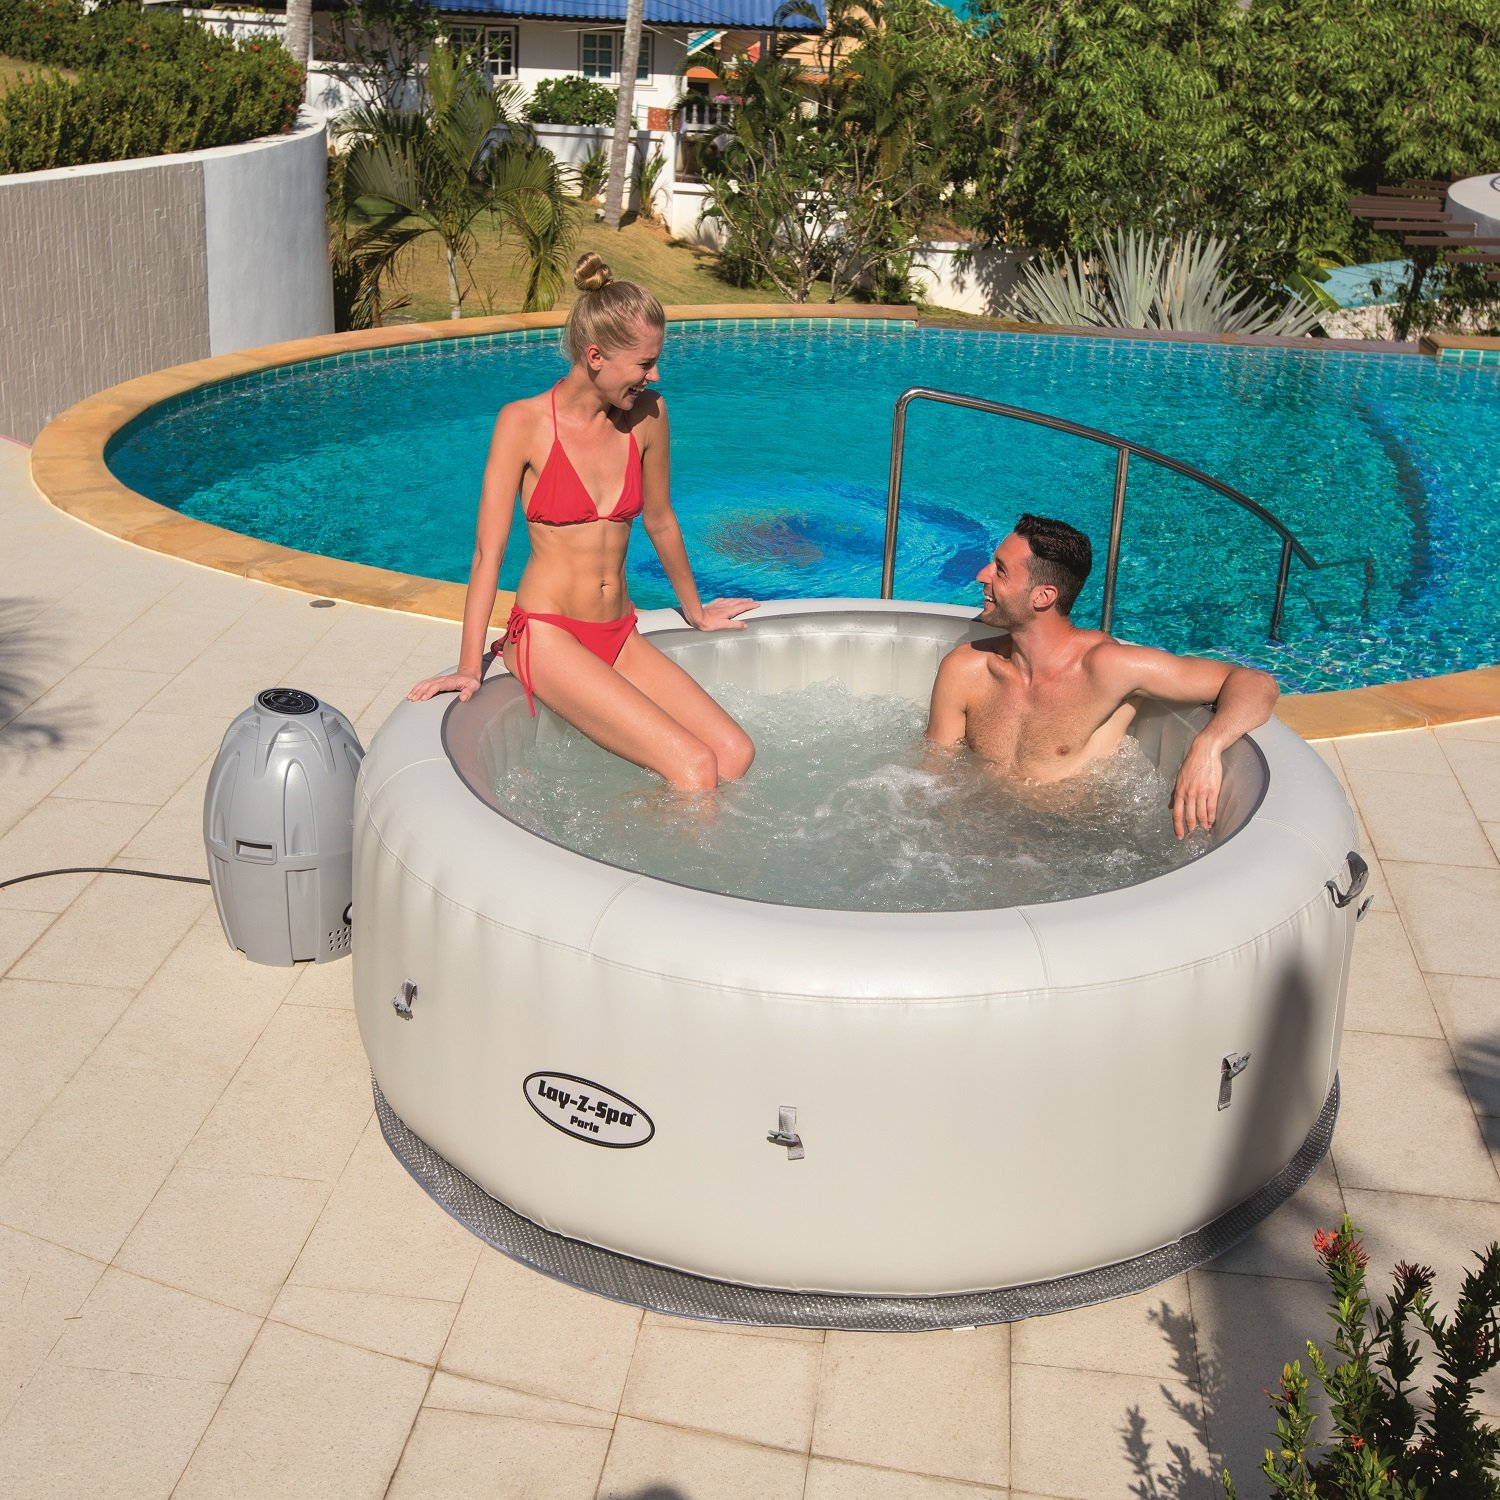 Bestway Lay-Z-Spa Paris Inflatable Hot Tub